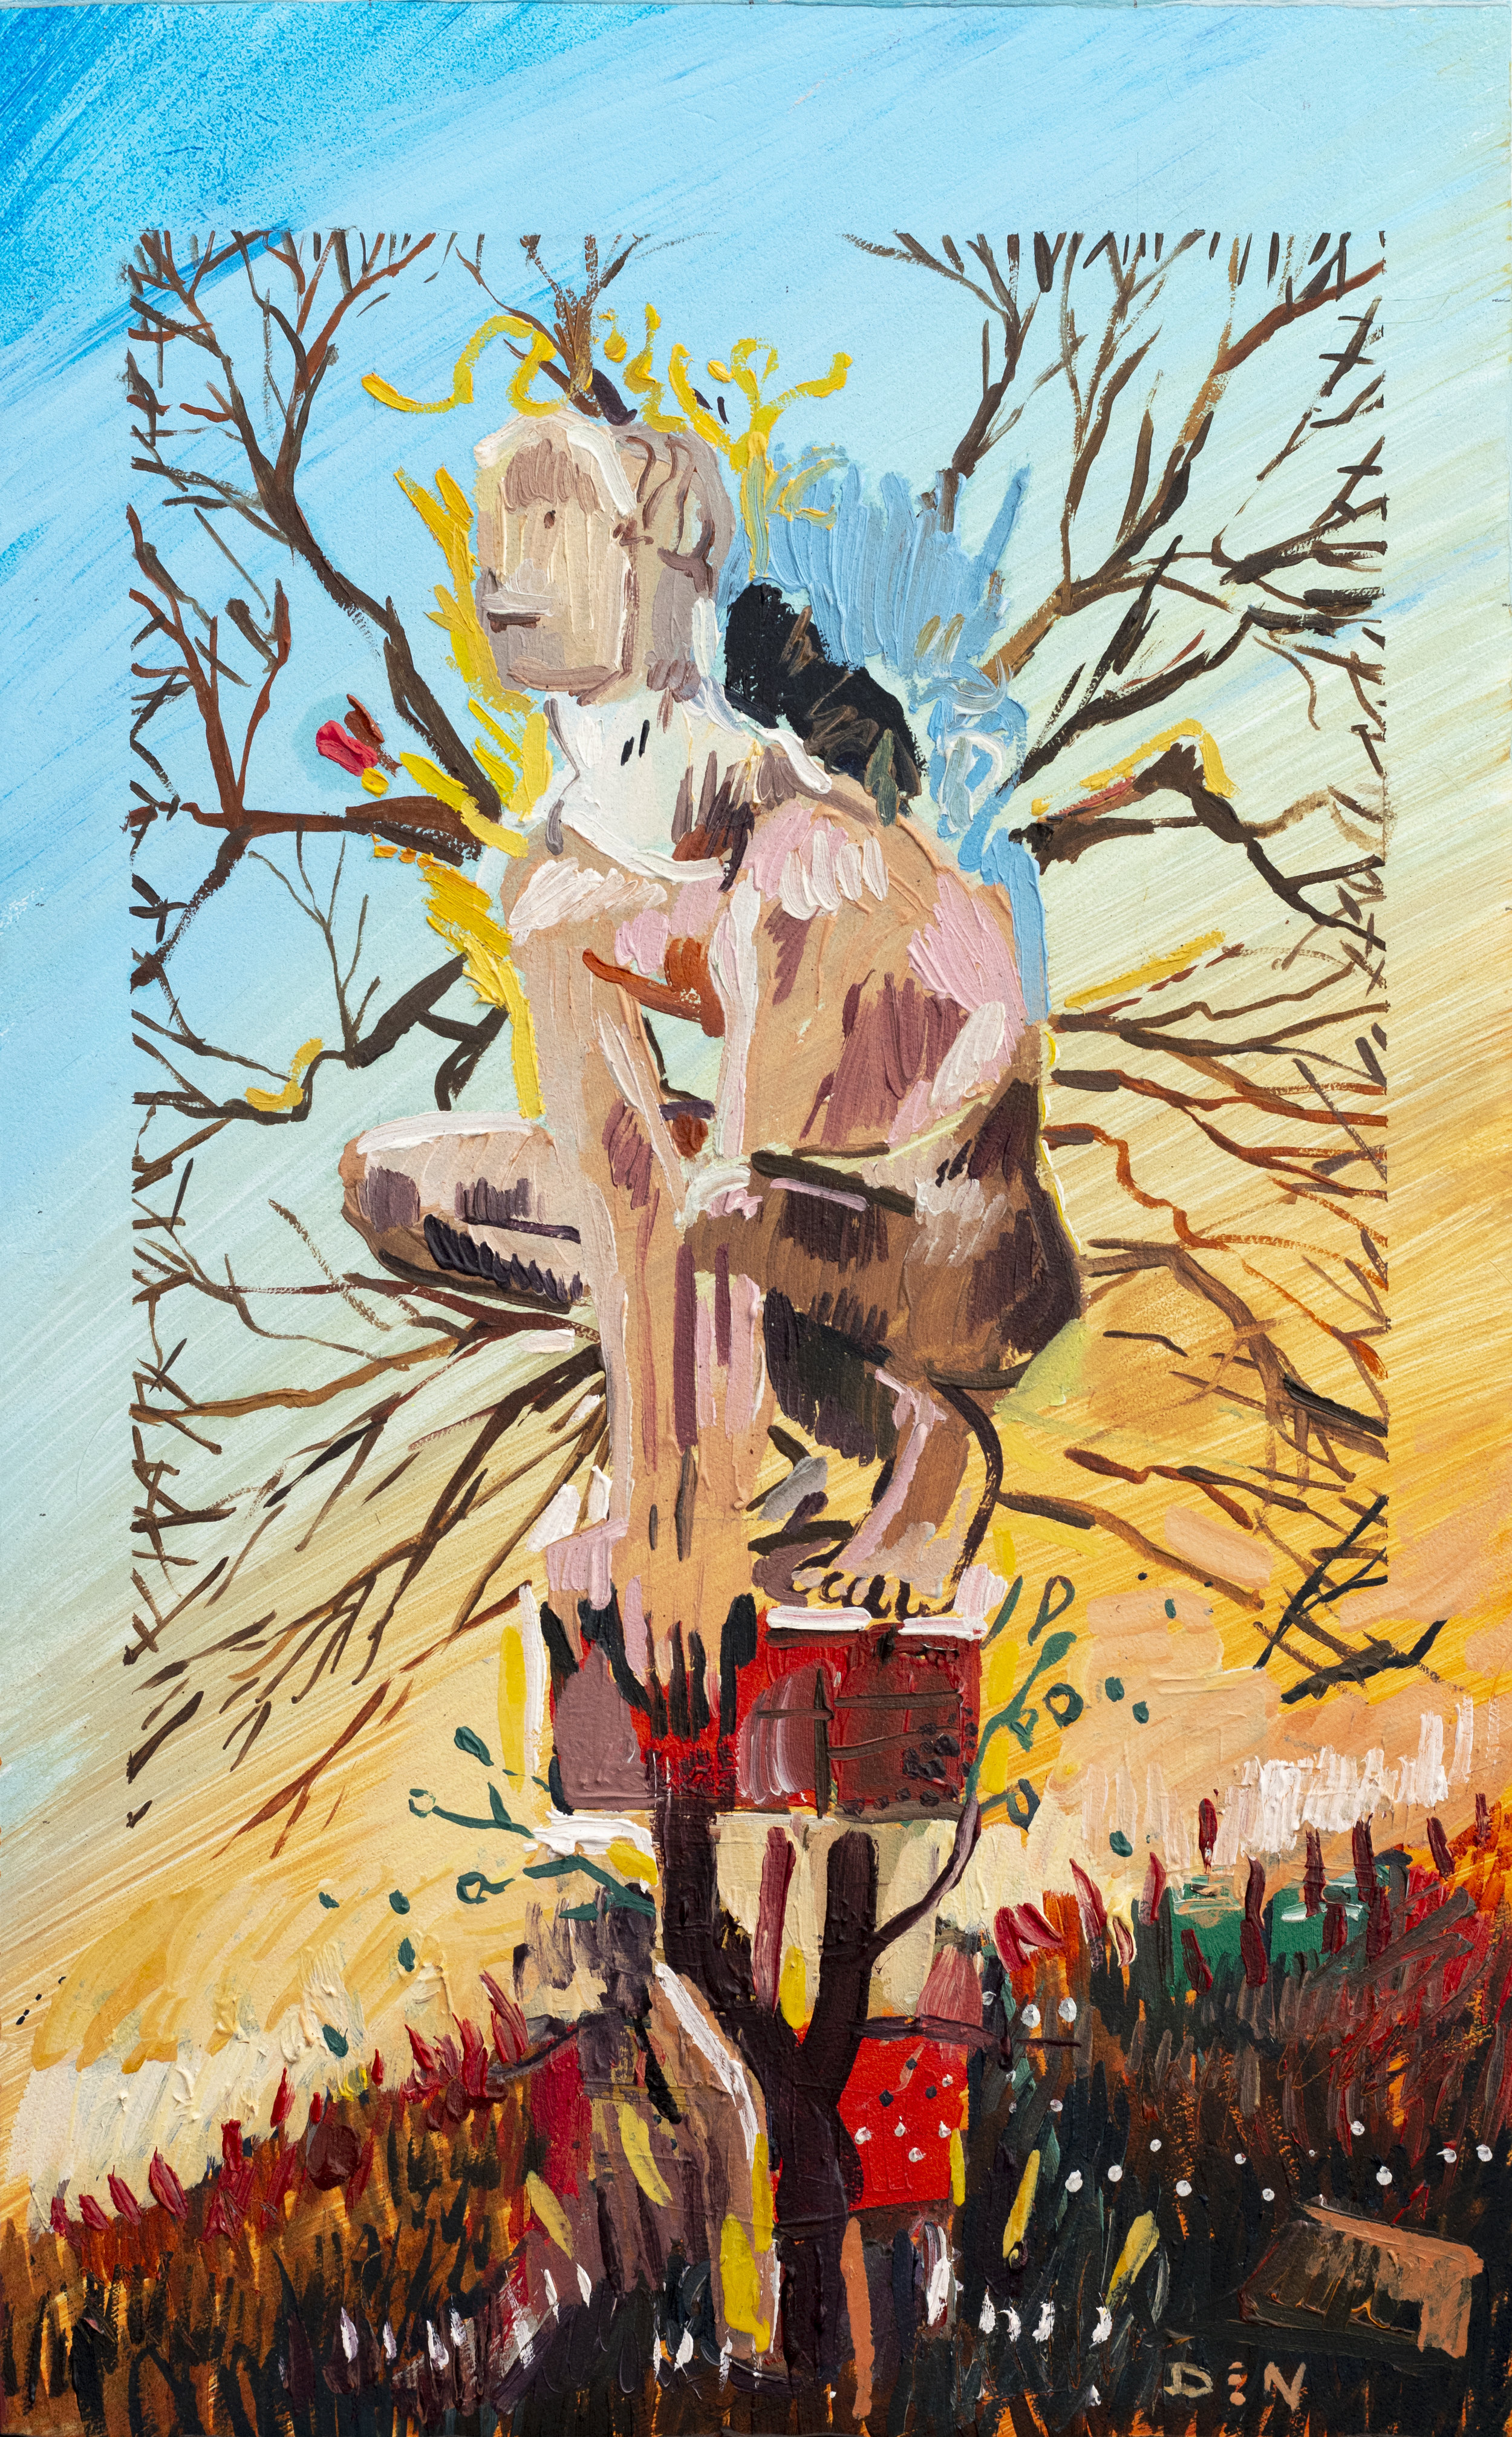 Branches Made of Man, 2019, Oil on Board, 25cm x 40cm